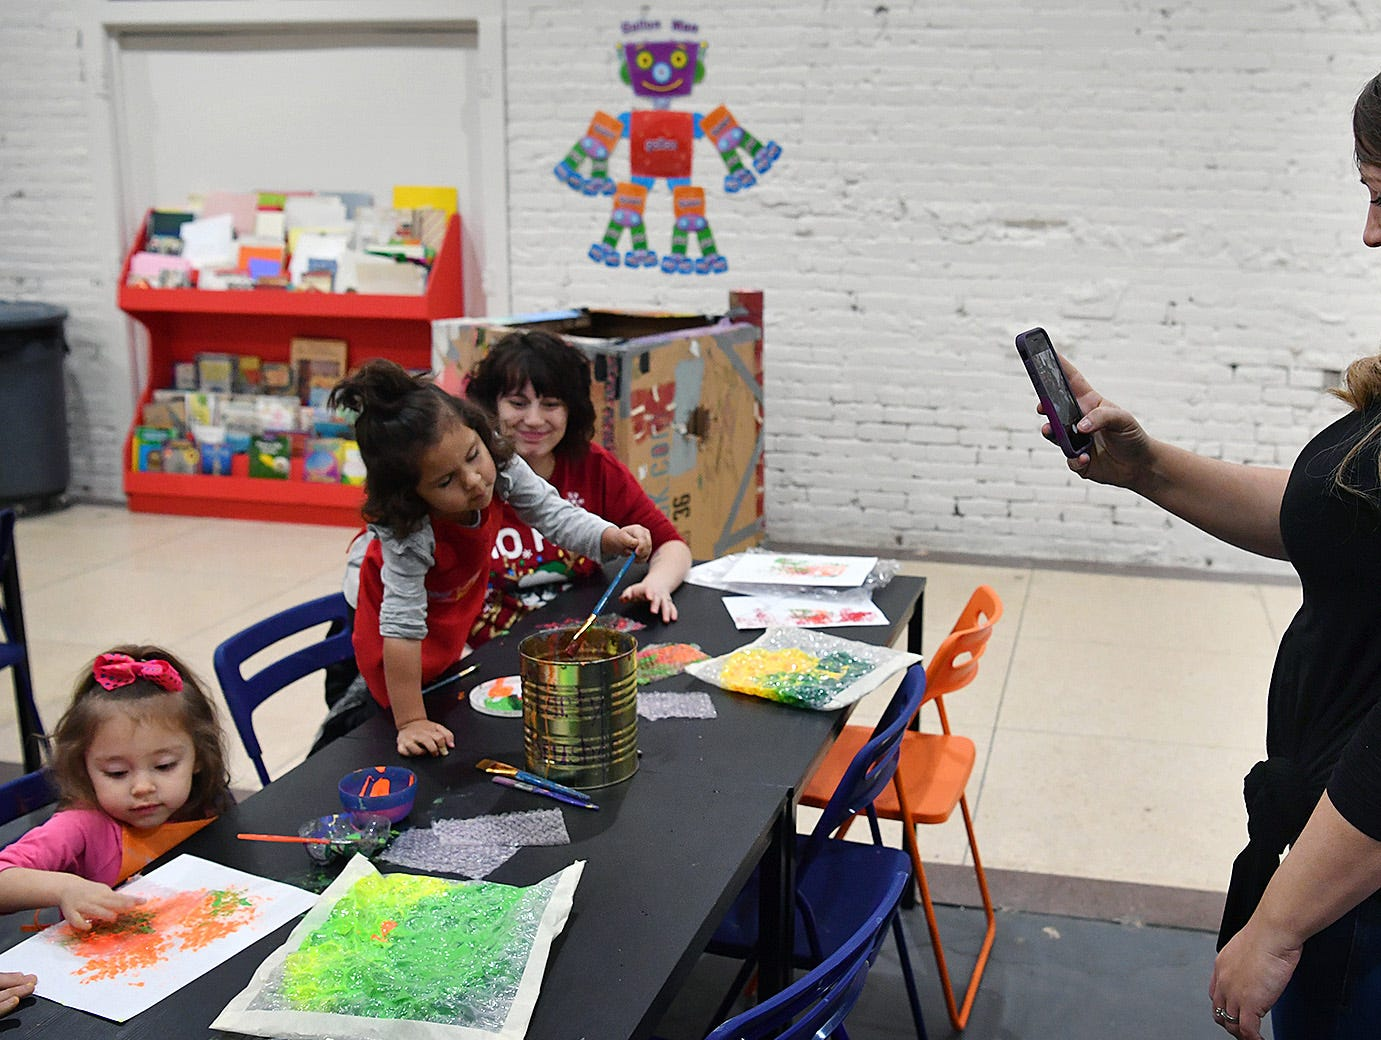 Shauna LaRocque, owner of CrashWorks STEAM Studio & Makerspace, takes photos for social media during a Mommy and Me event using bubblewrap and paint.